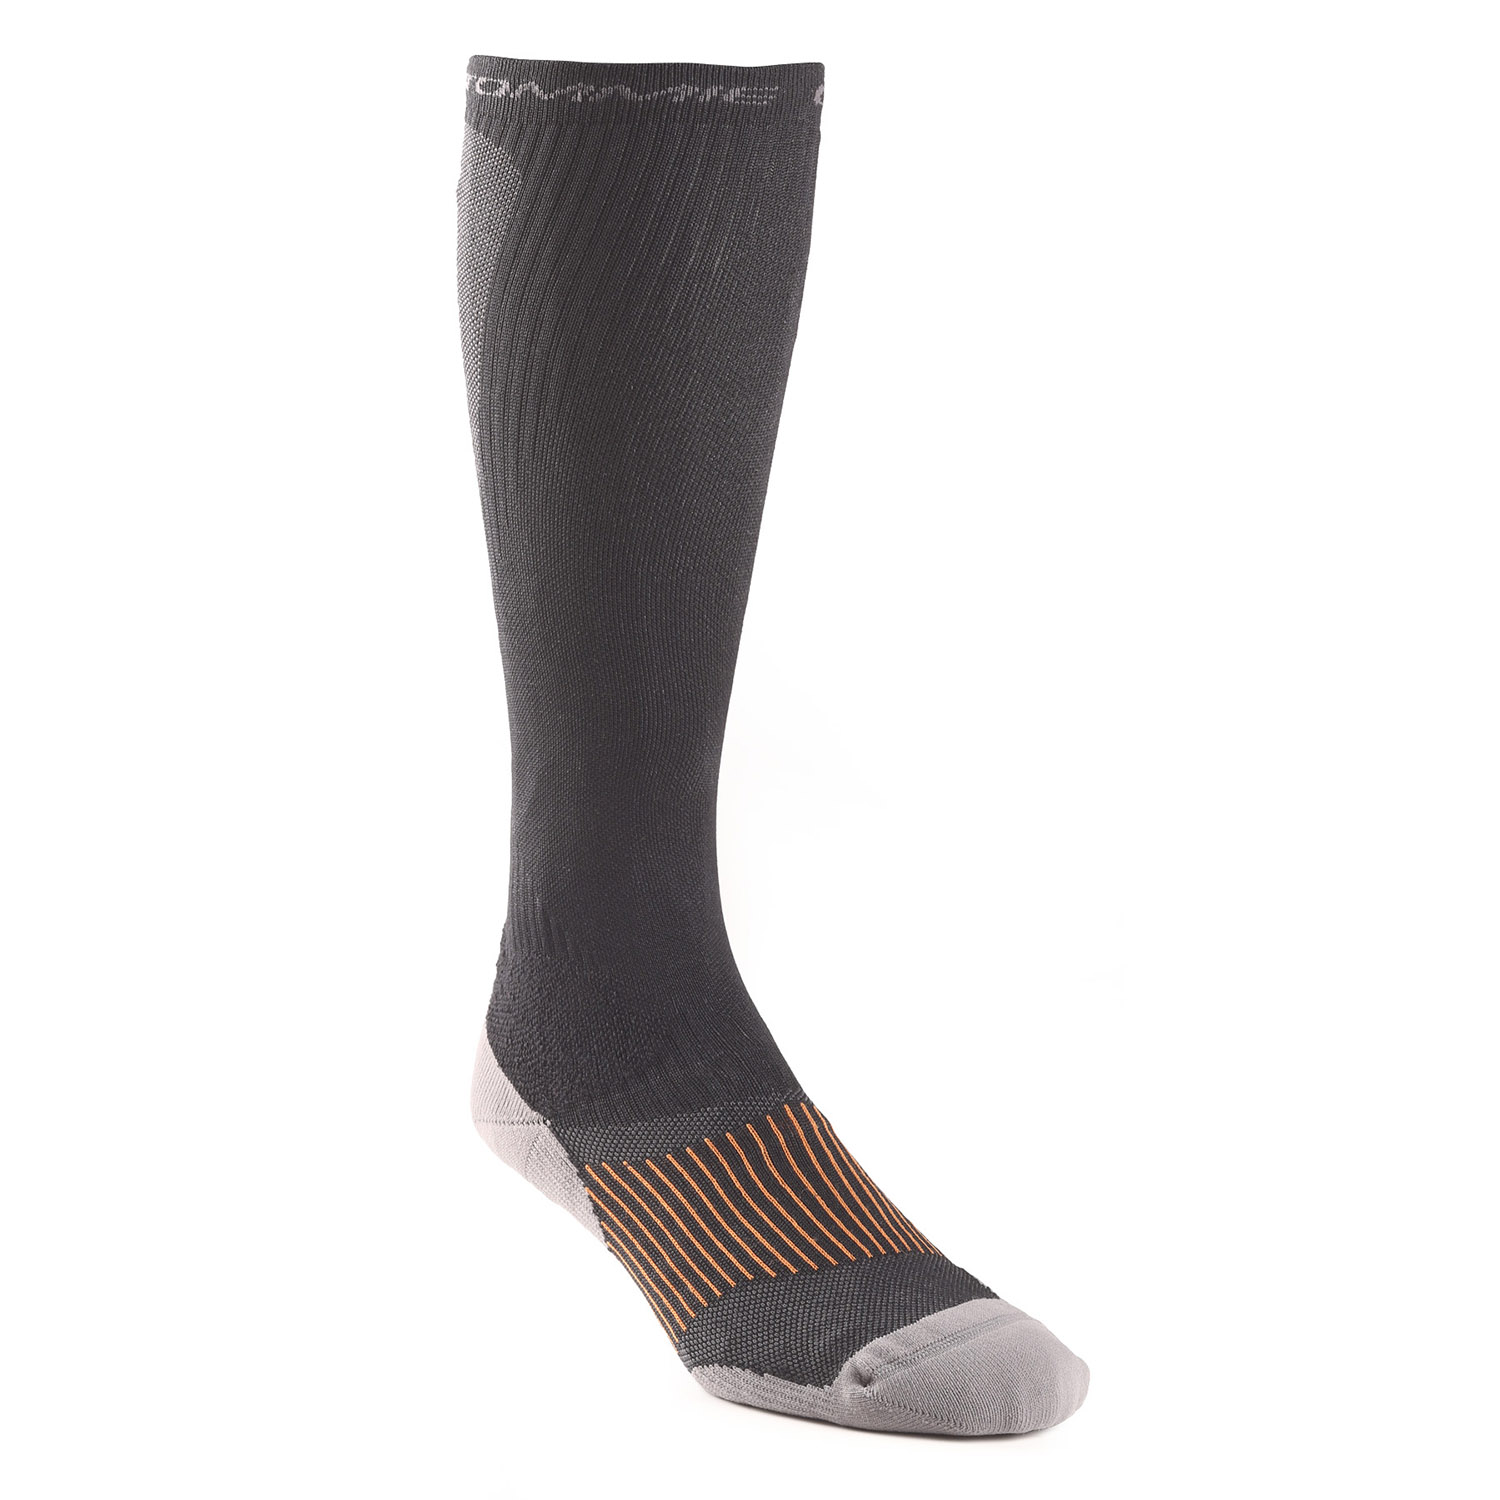 Tommie Copper Men S Athletic Calf Compression Socks At Galls